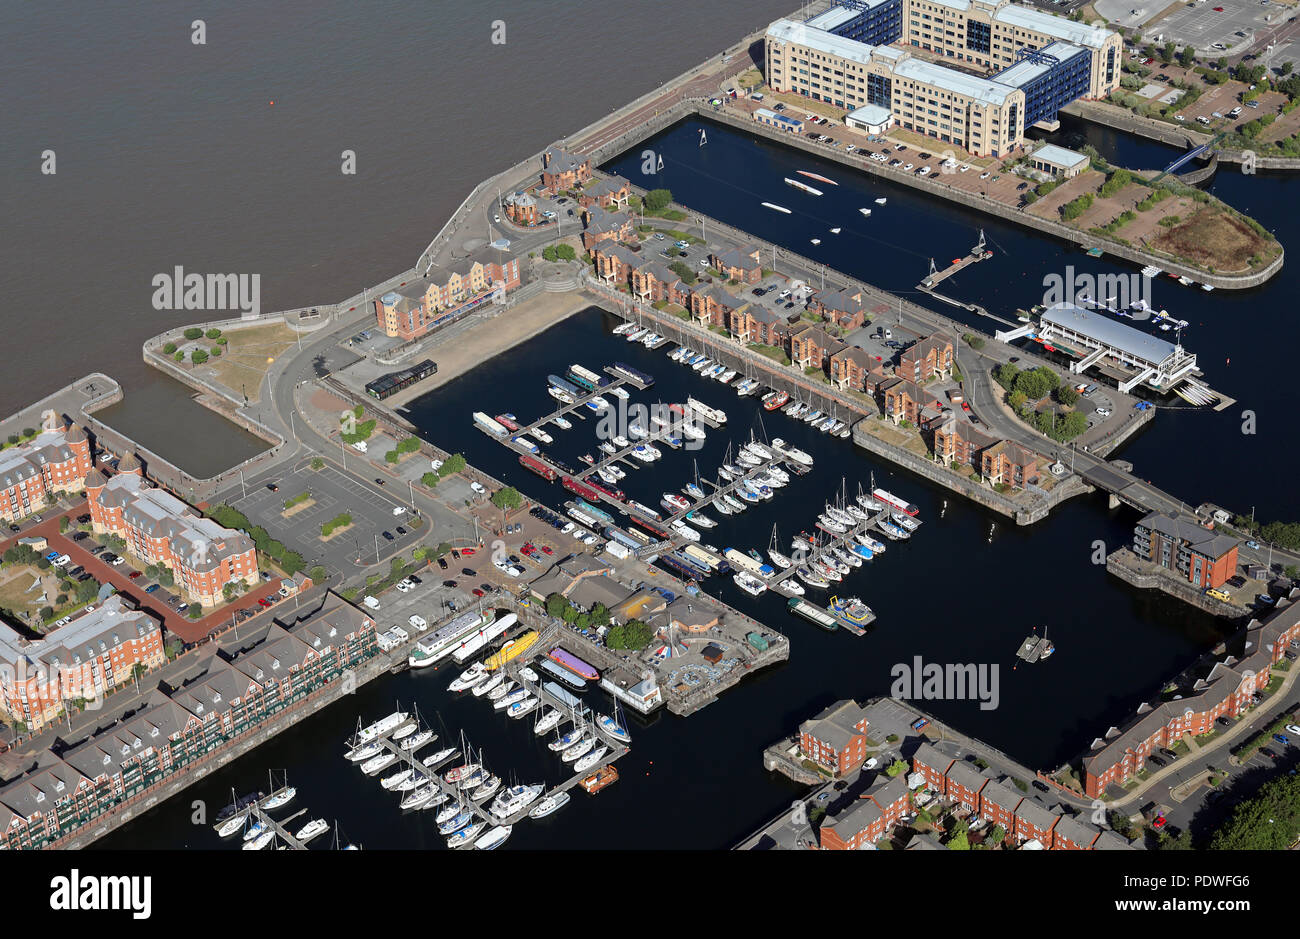 aerial view of Liverpool Marina on the Mersey, UK - Stock Image